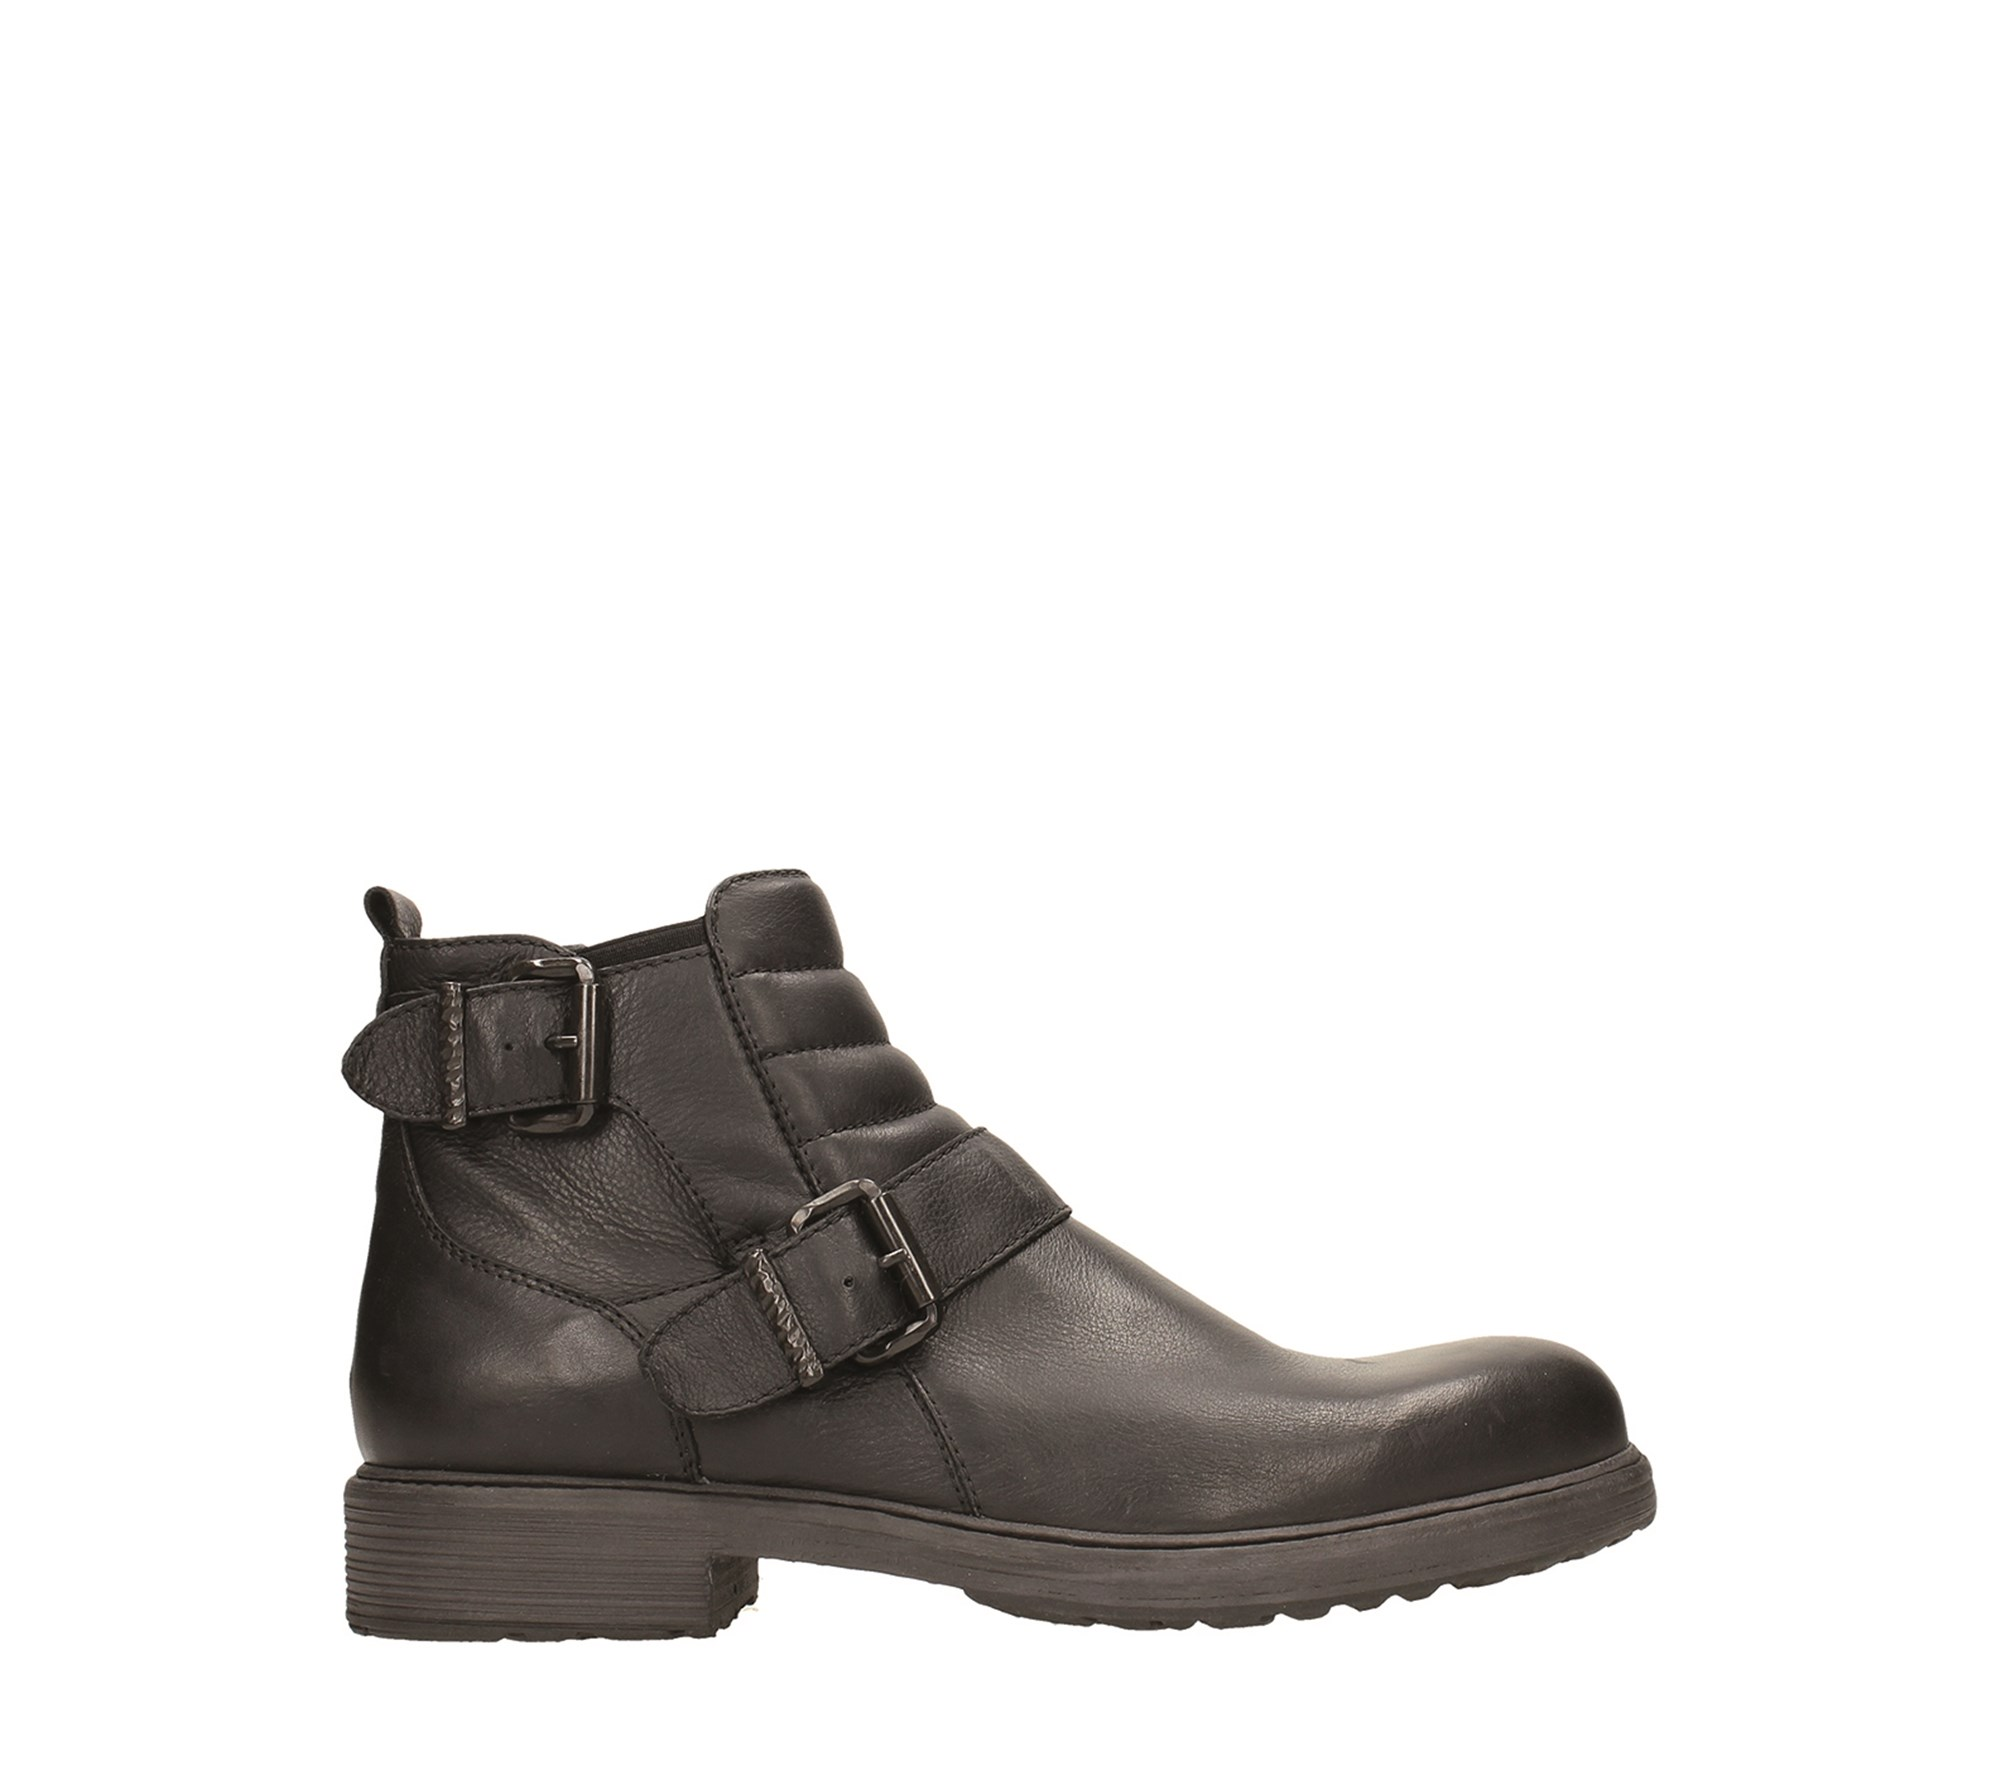 Tata Italia Shoes Man Stivaletti MH-416H06